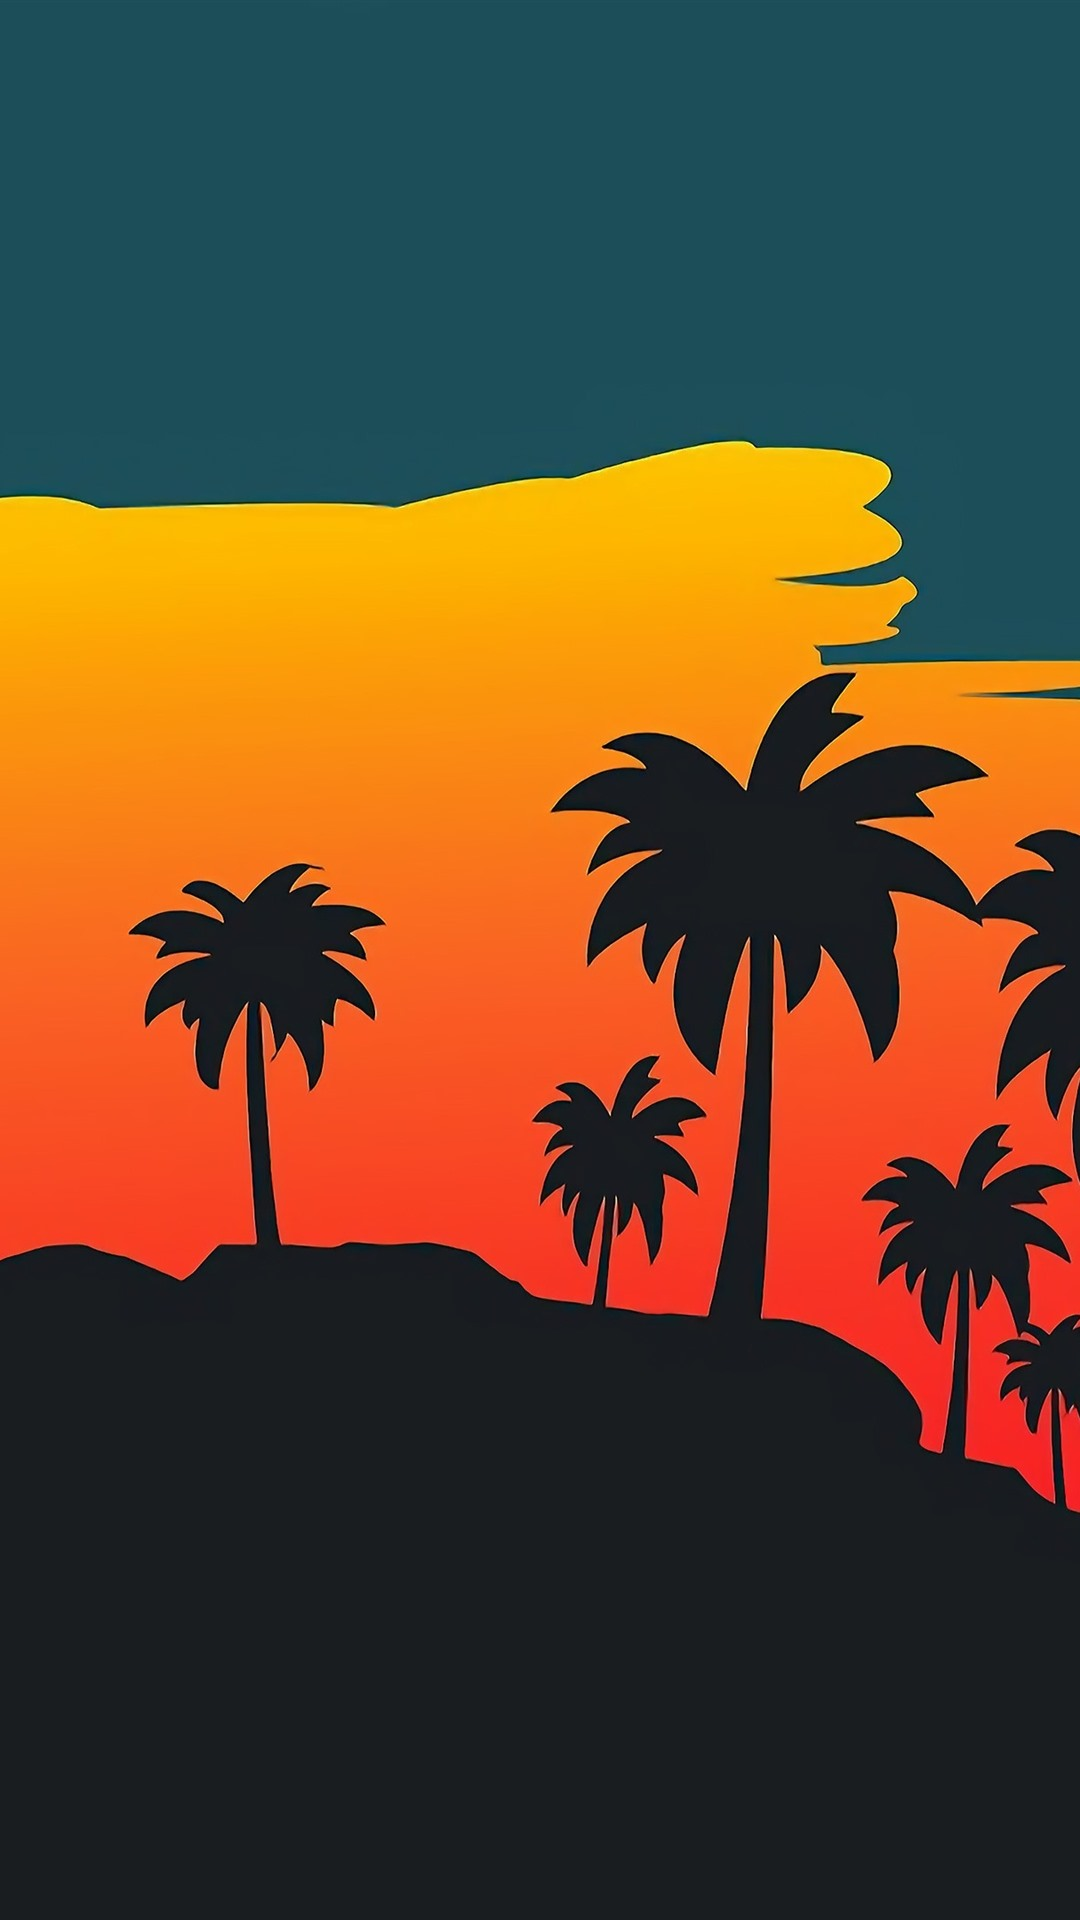 Iphone Wallpaper Palm Trees, Sunset, Vector Picture - Digital Wallpaper Iphone Sunset Palm Tree - HD Wallpaper